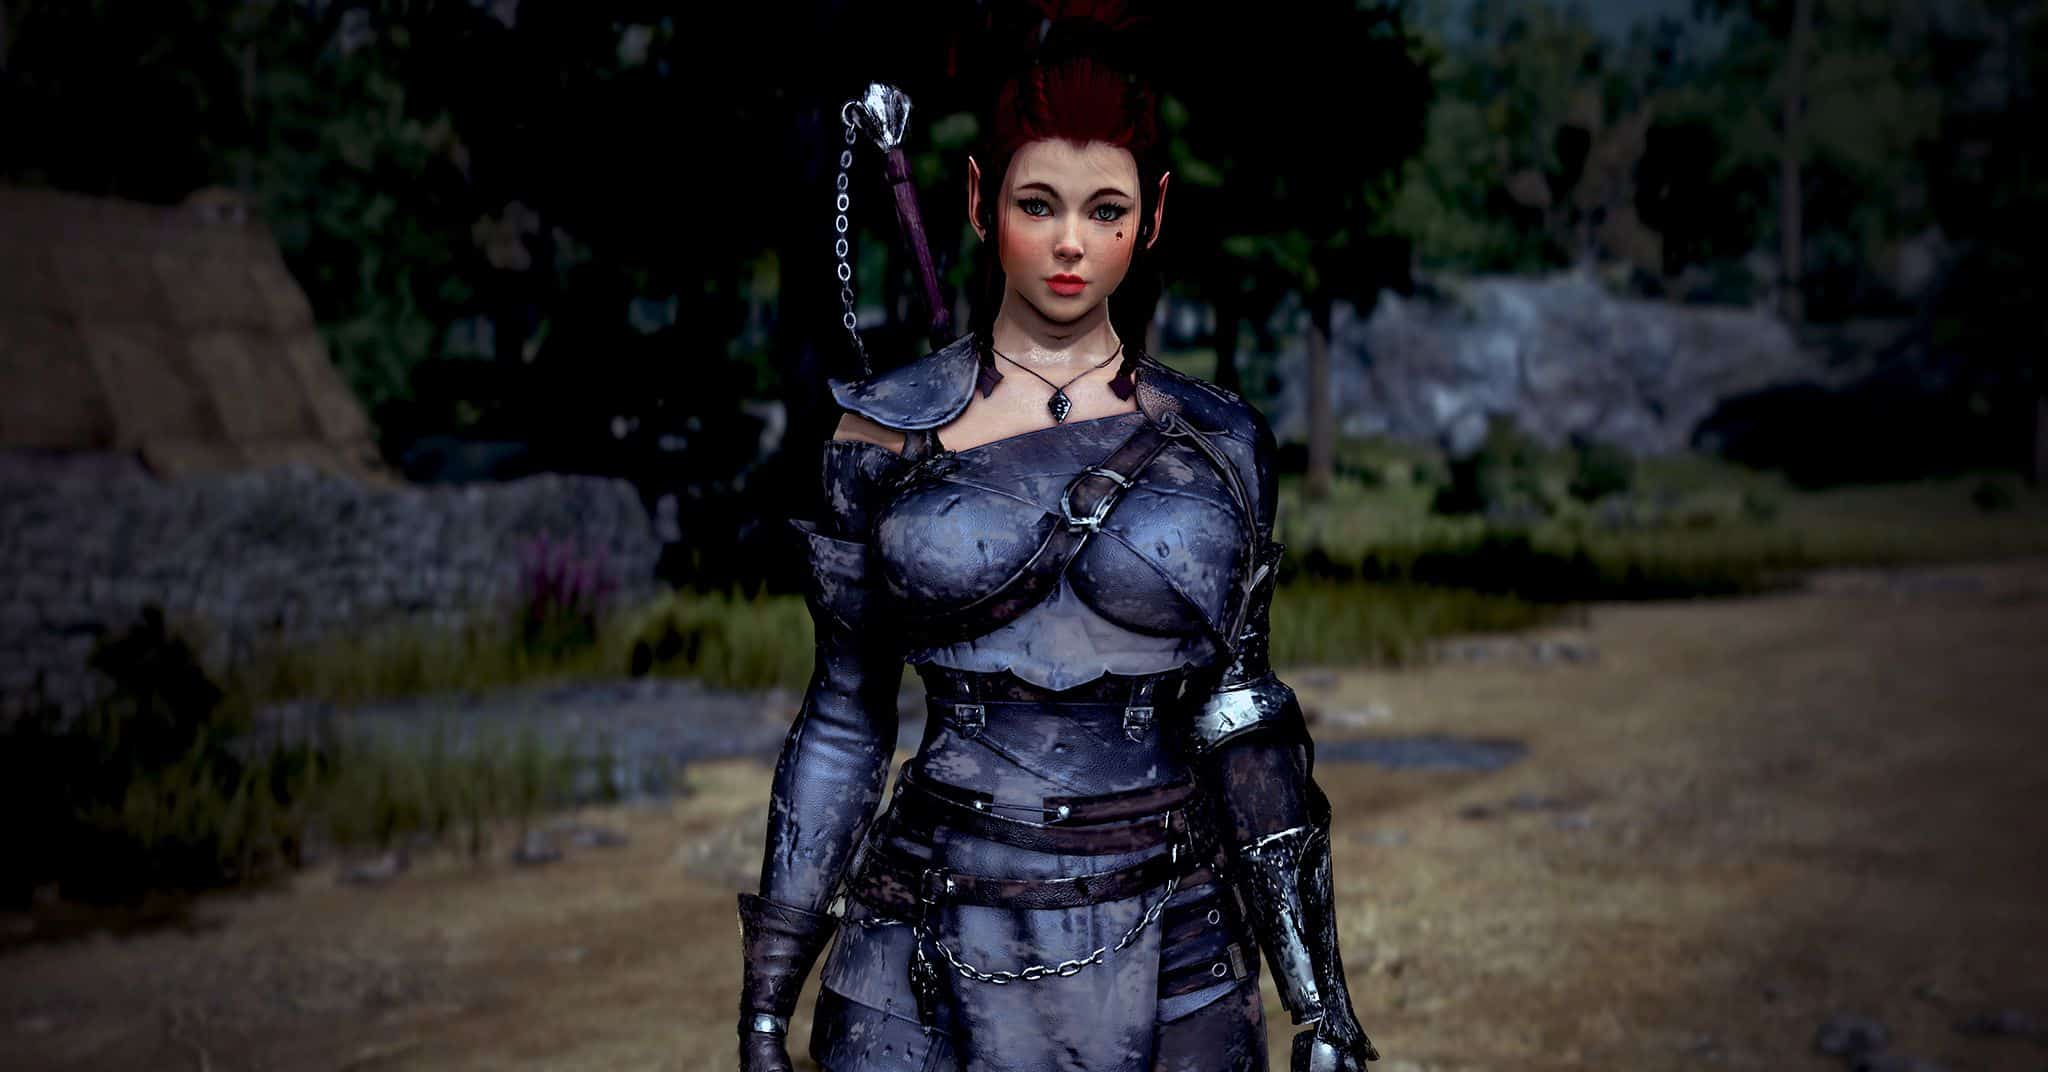 Black Desert Online - Armor Sets for PvE & PvP - Green, Blue & Boss